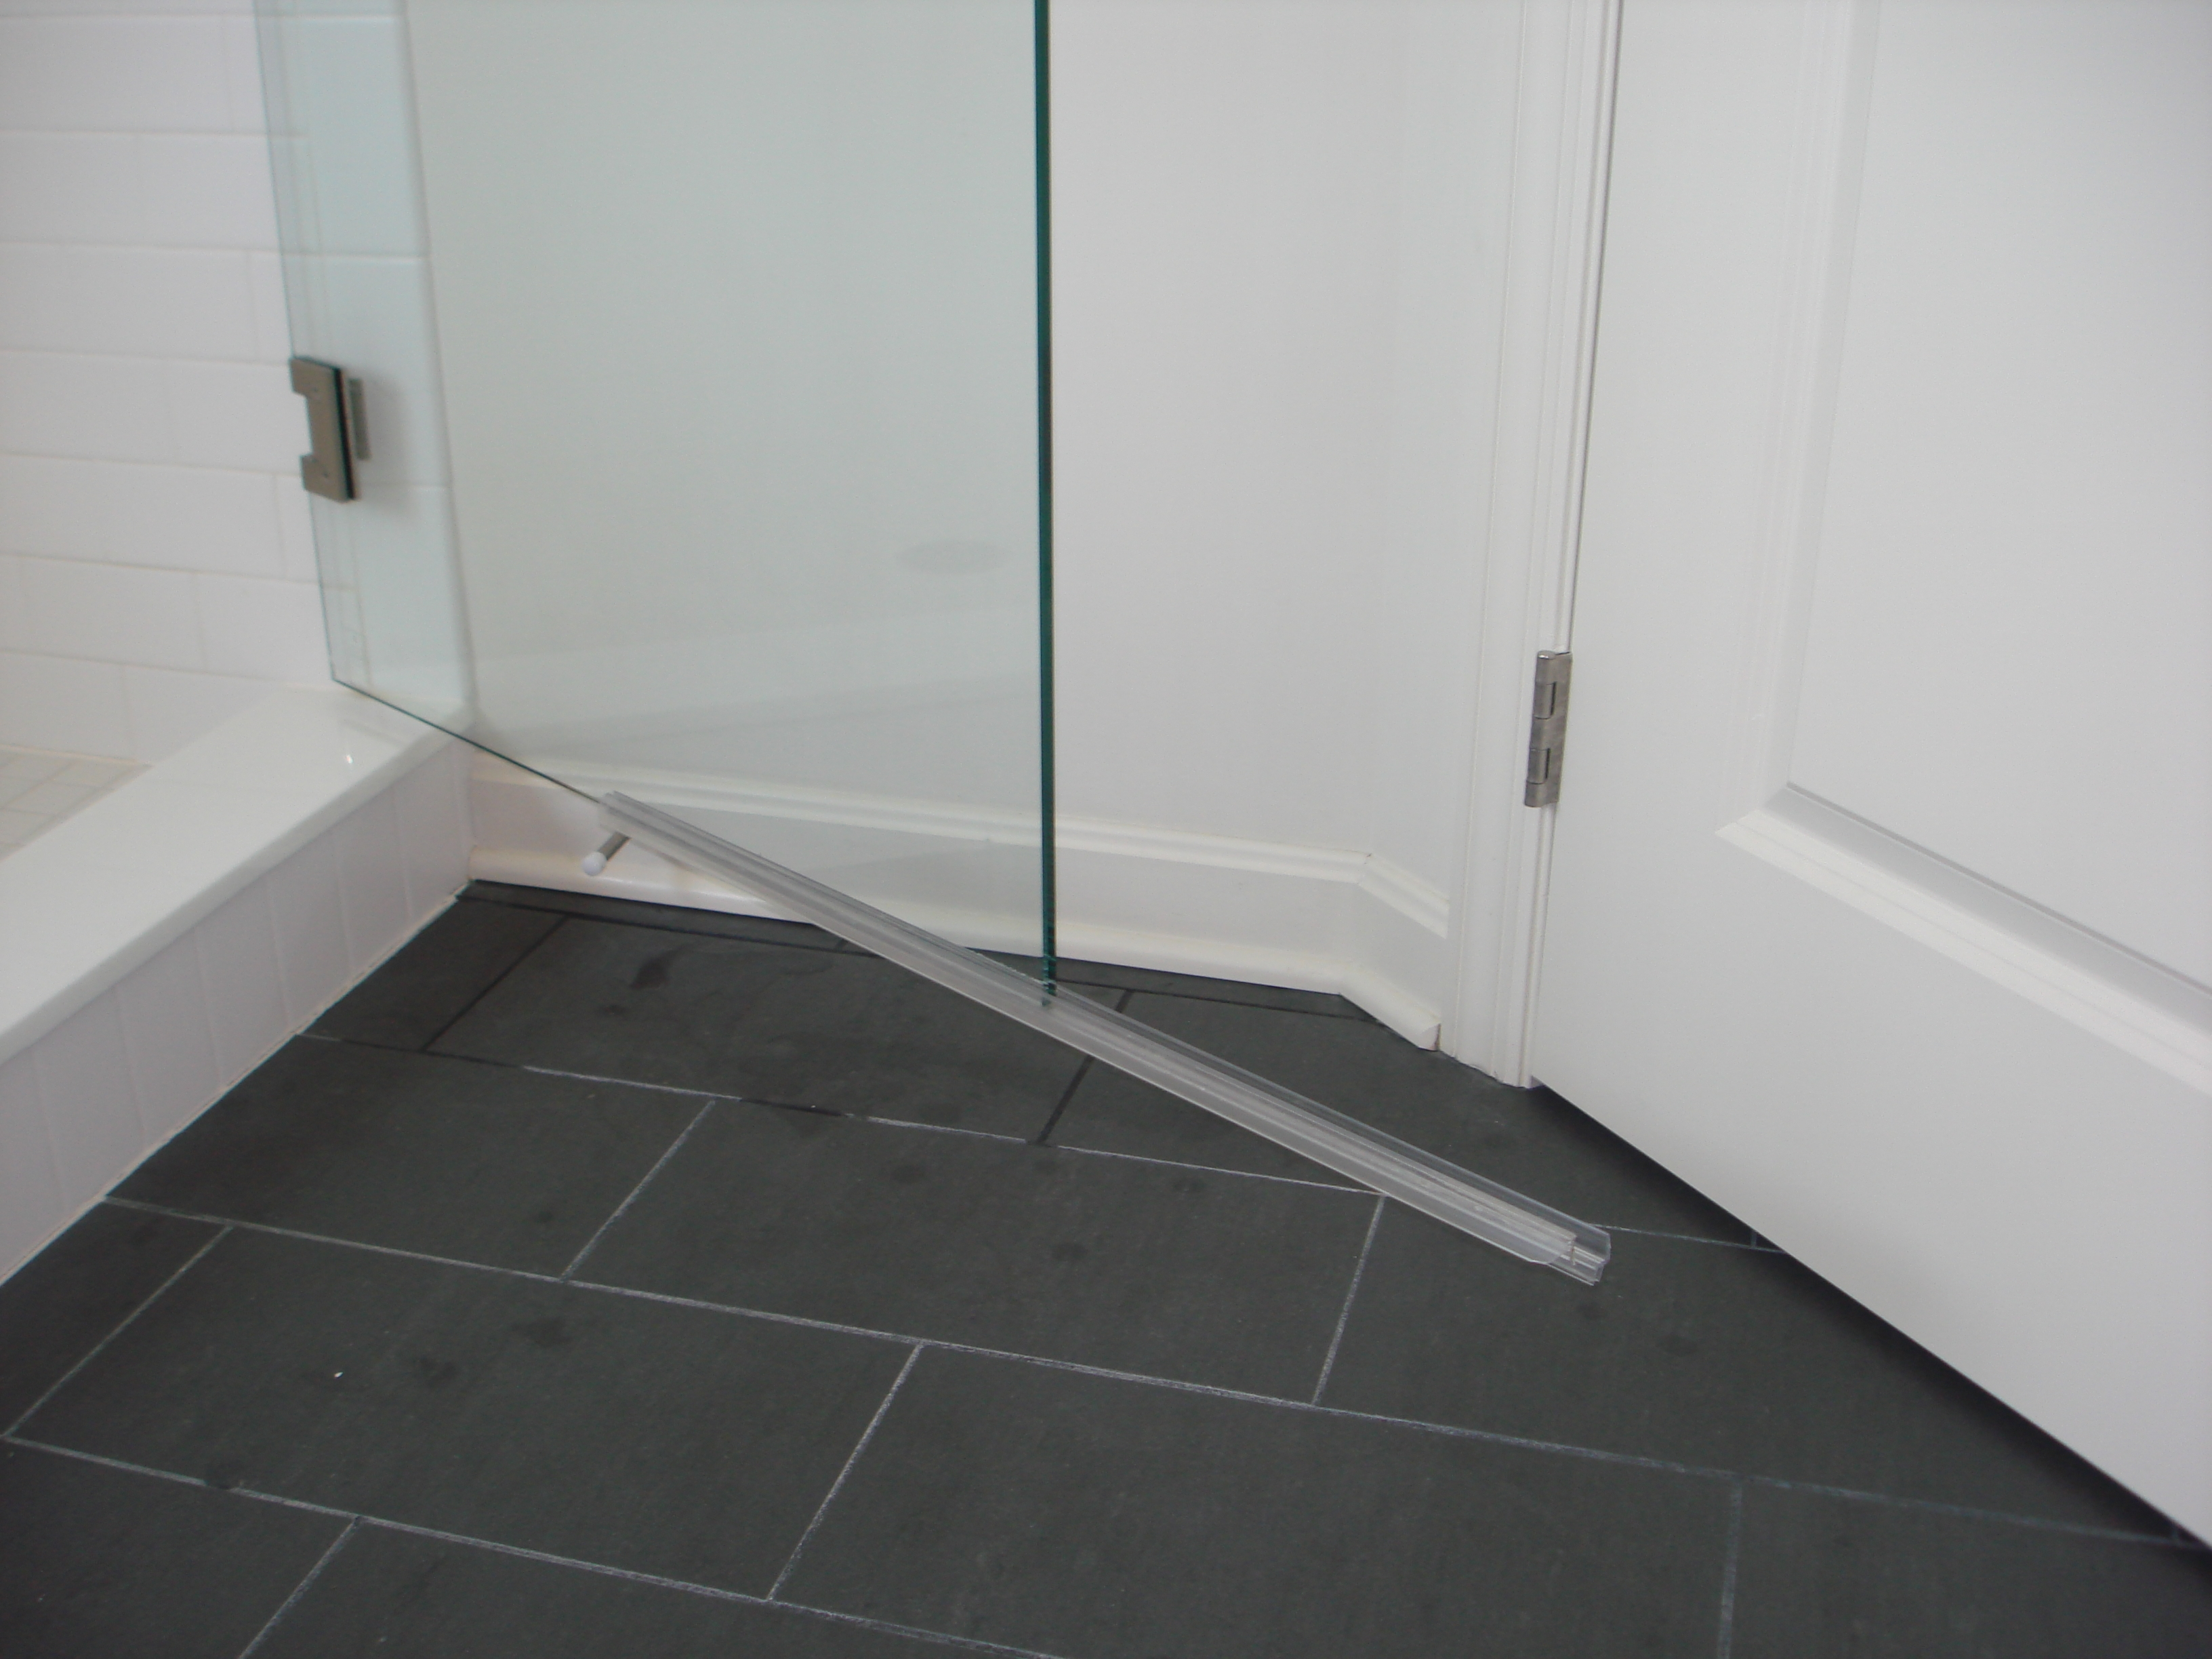 Frameless Glass Shower Door Sealsshower glass door seal